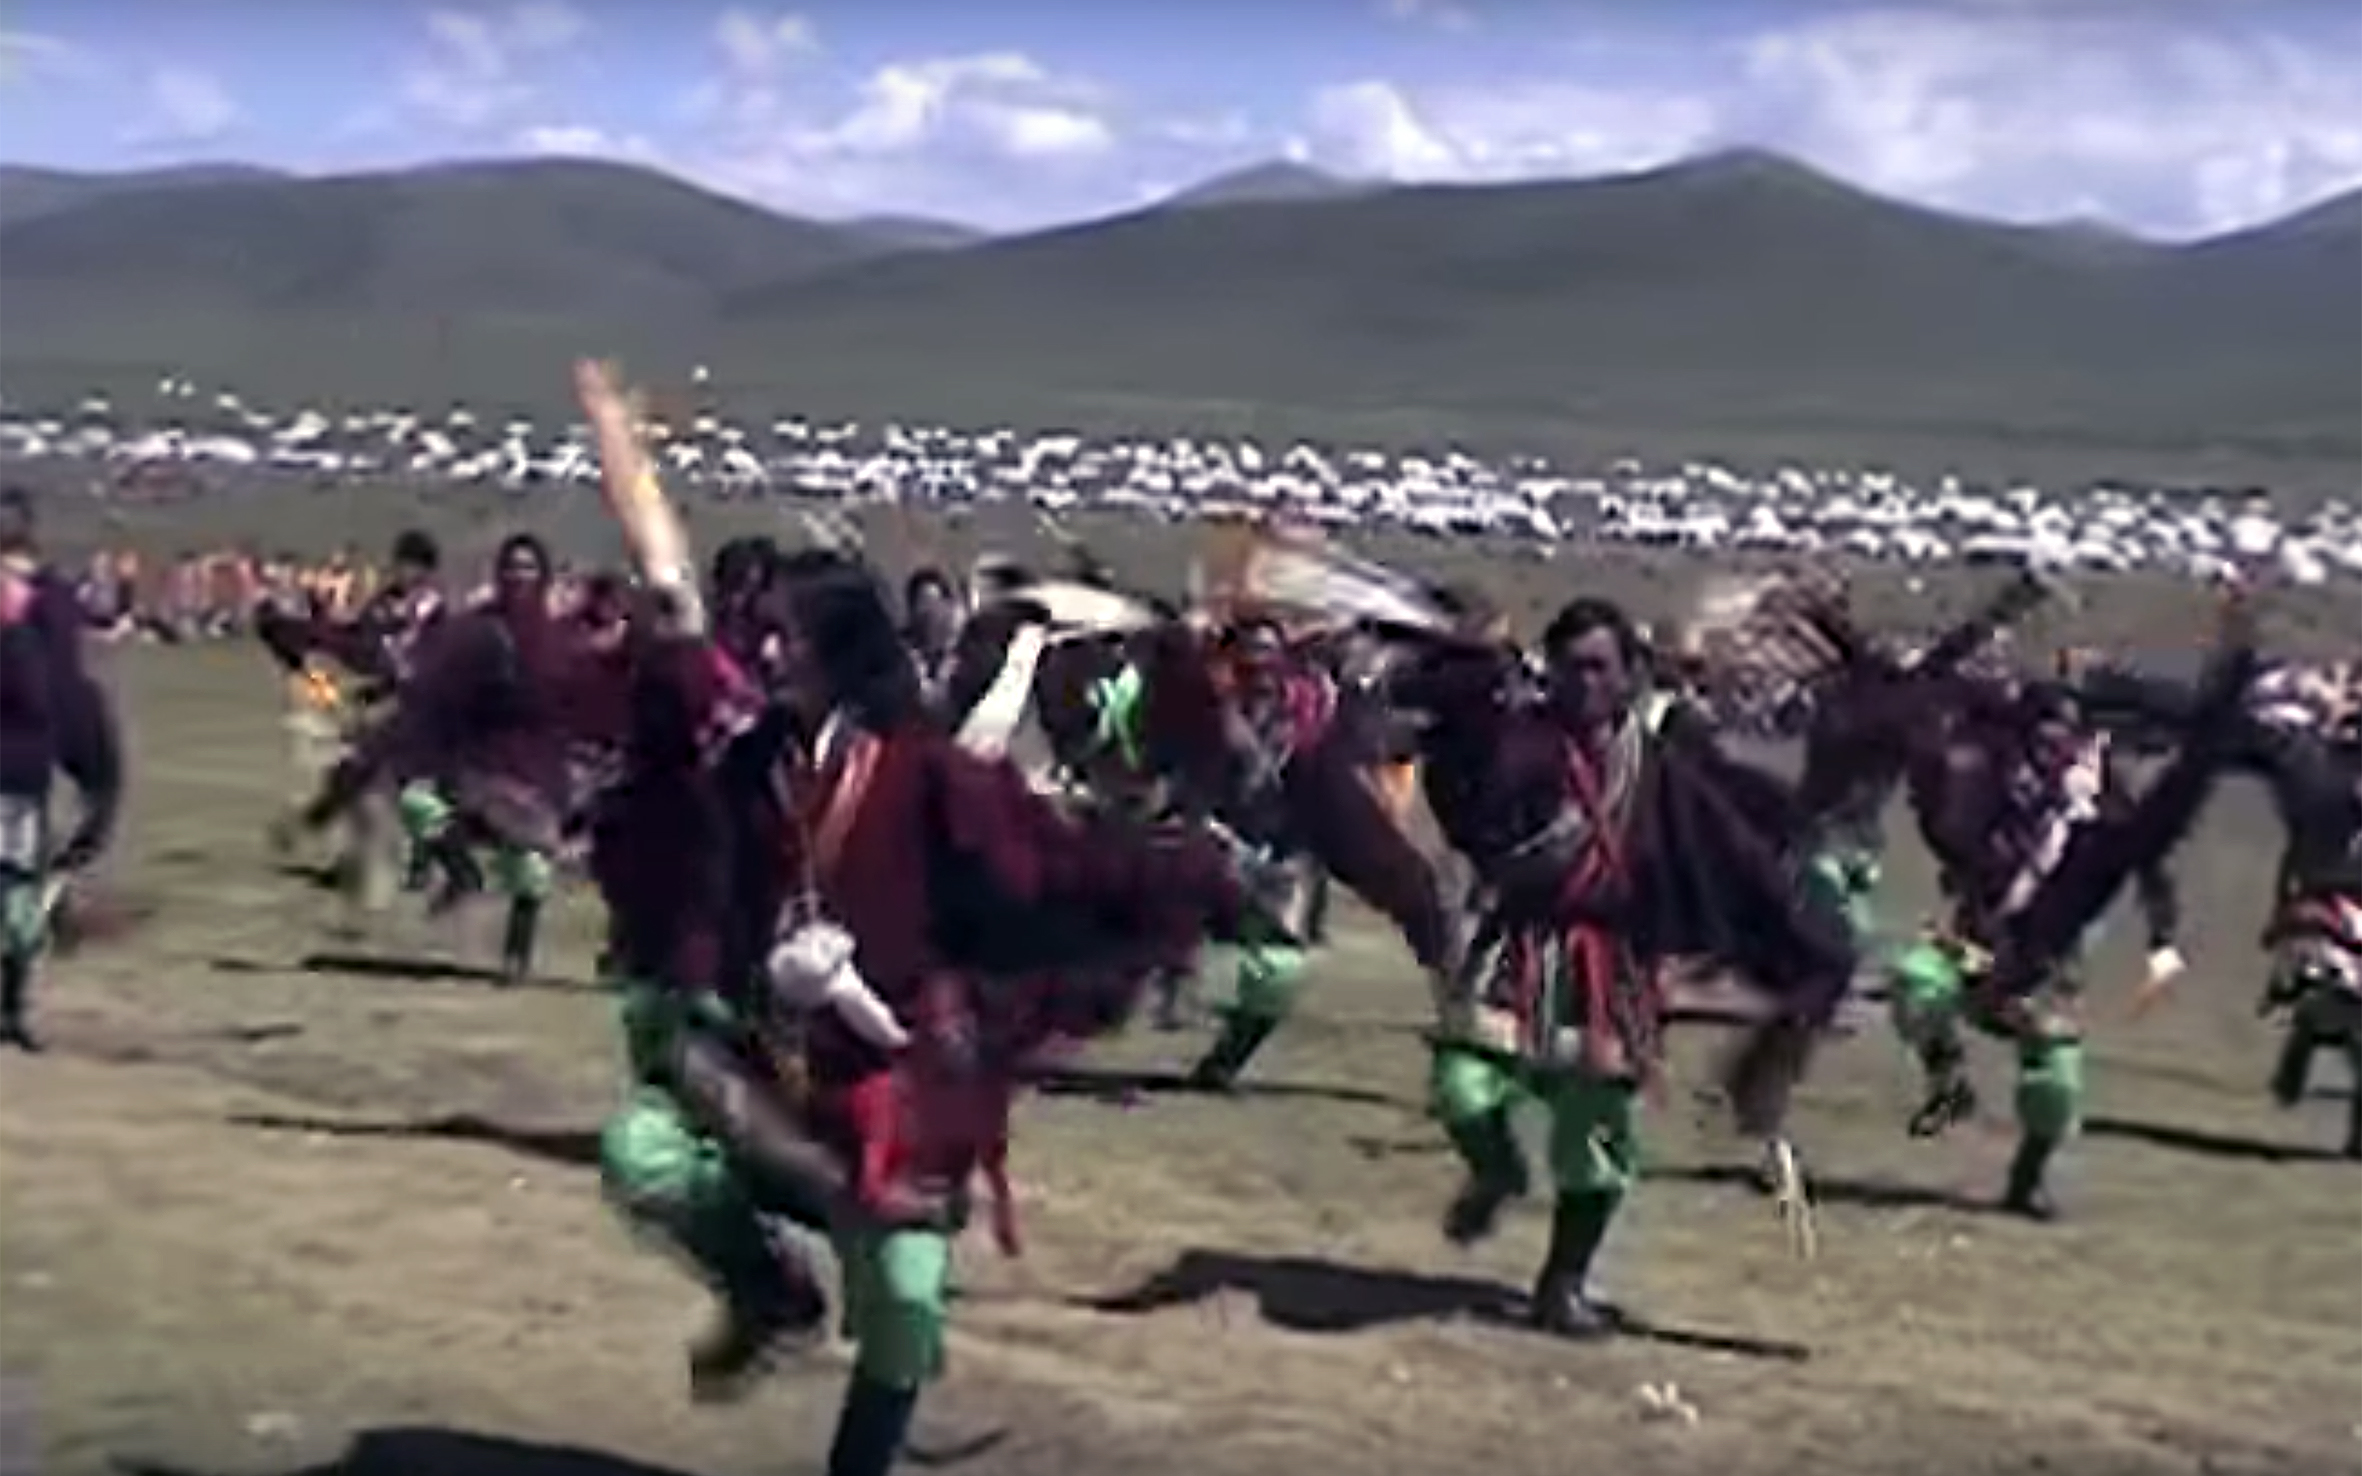 900.Traditional FOLK dances / Tibet - Traditional FOLK dances of Tibet are of a great variety, according to the folk music of each region of the Tibetan plateau, now Autonomous Region of Tibet. Since the Chinese invasion, it has been difficult to pinpoint exact musical terminology and dance steps of each of the originally Tibetan regions due to Internet search barriers that influence language translation and research tools. For this project, all Traditional Dances of Tibet were grouped into one category. As a general description, Traditional Folk Tibetan Dances are usually cheerful, performed by communities and general people, inspired by regional songs and costumes. They praise local deities, celebrate harvesting, represent Buddhist and local deities, and more recently, even unite different regions into dancing to express the hope that Tibetan exiled return to their homeland, like the Lhoka Dances.